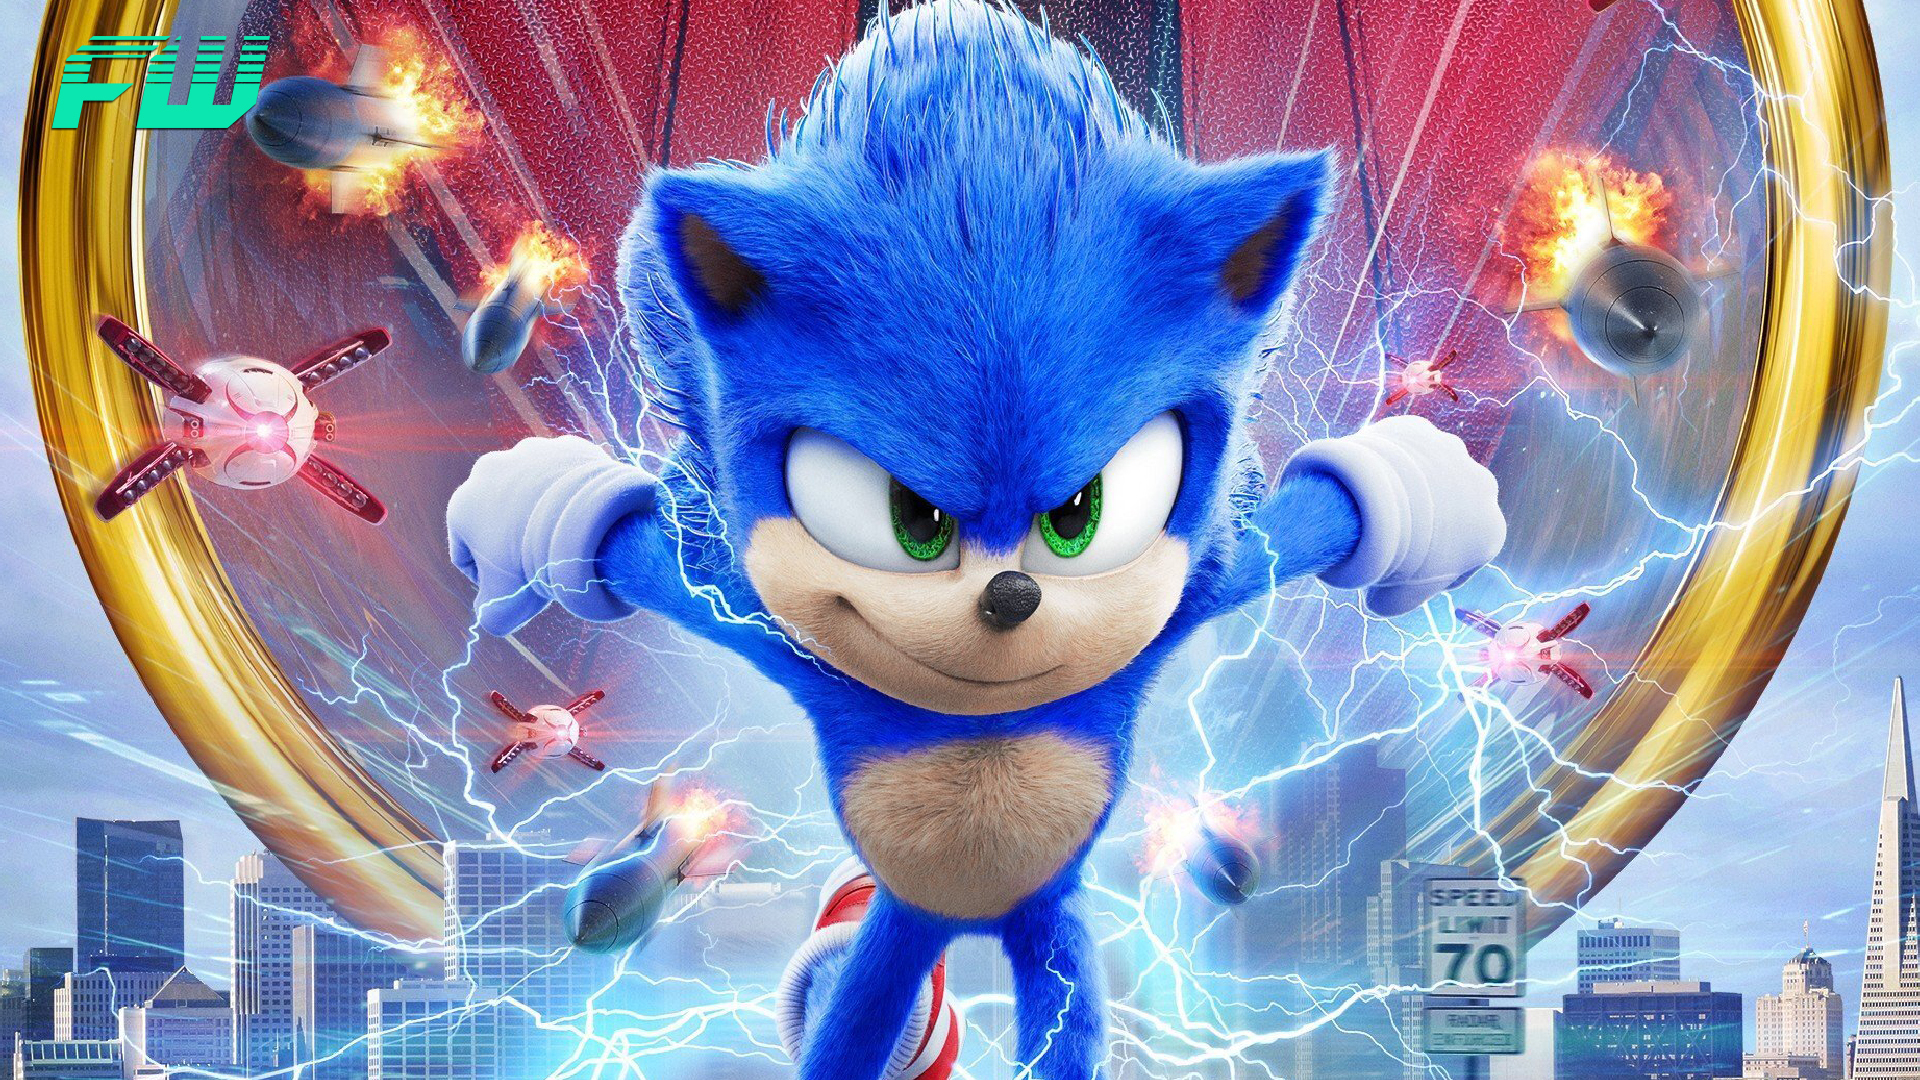 Sonic The Hedgehog Director Talks Tails And Sequel Fandomwire